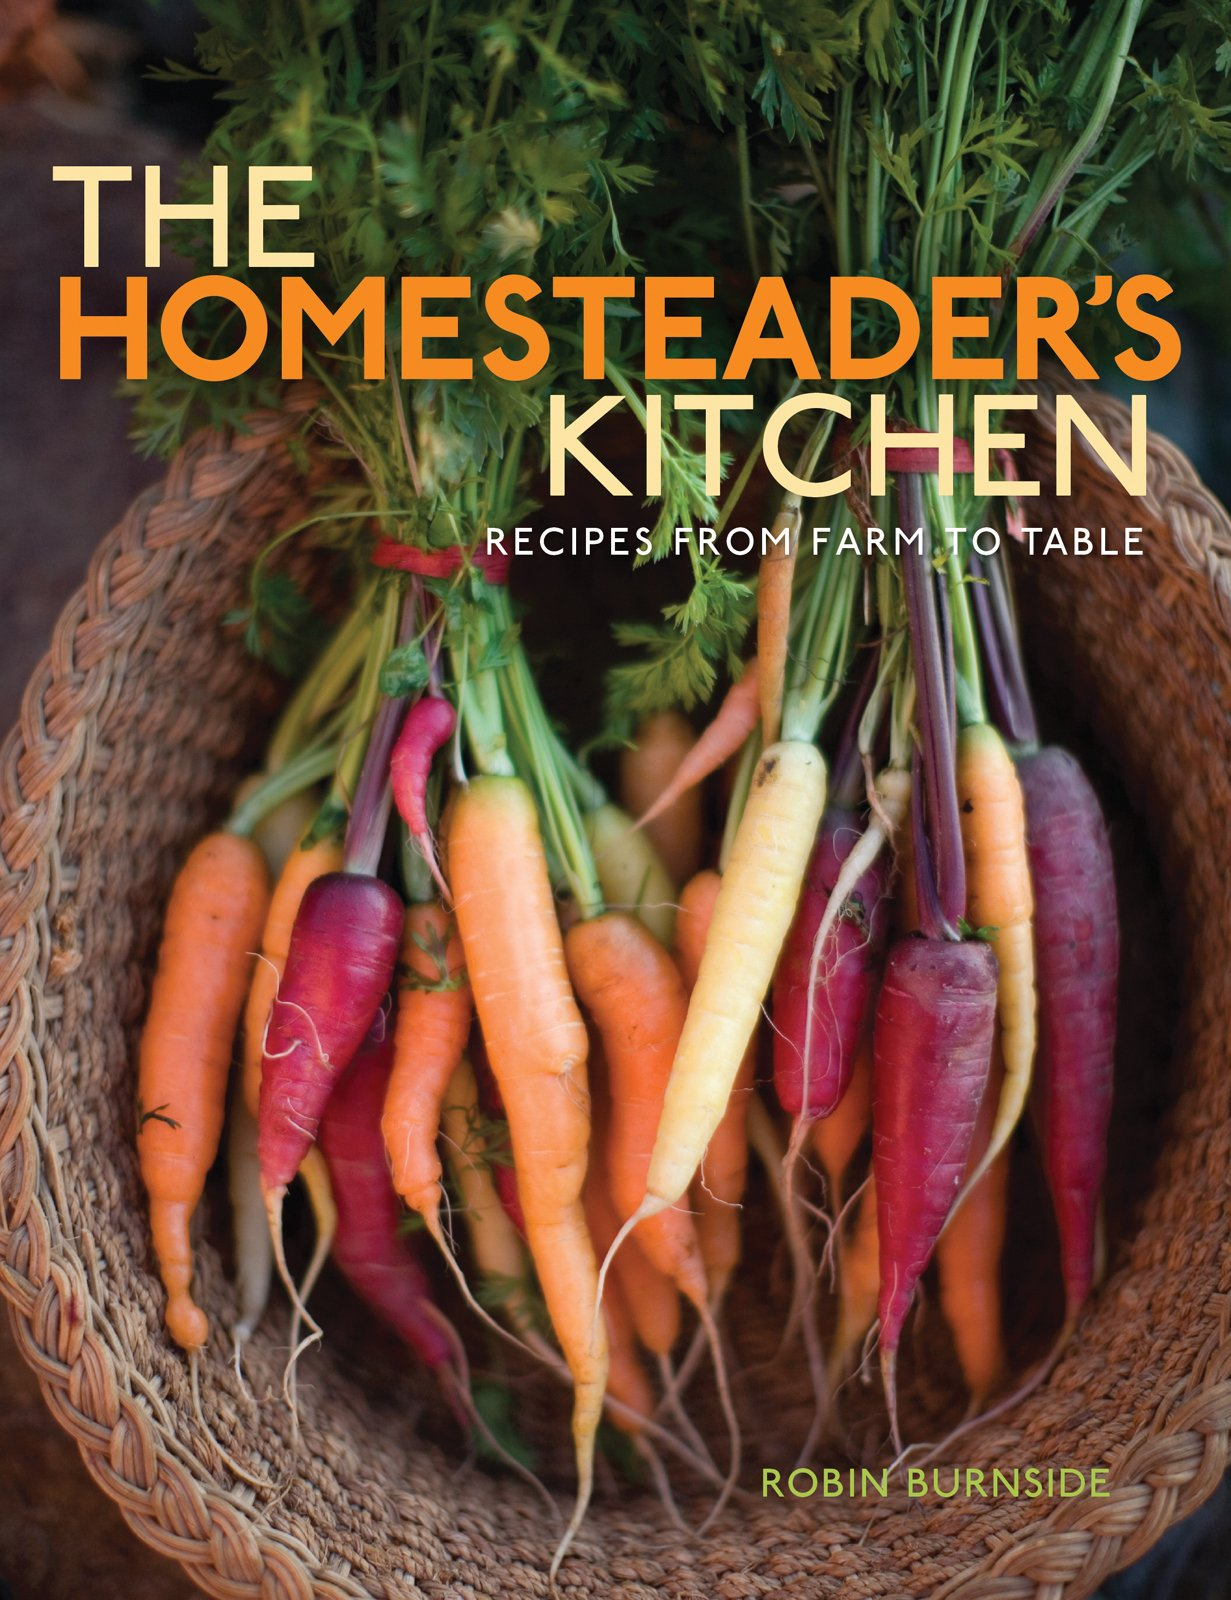 The homesteaders kitchen recipes from farm to table robin the homesteaders kitchen recipes from farm to table robin burnside 9781423600589 amazon books forumfinder Choice Image